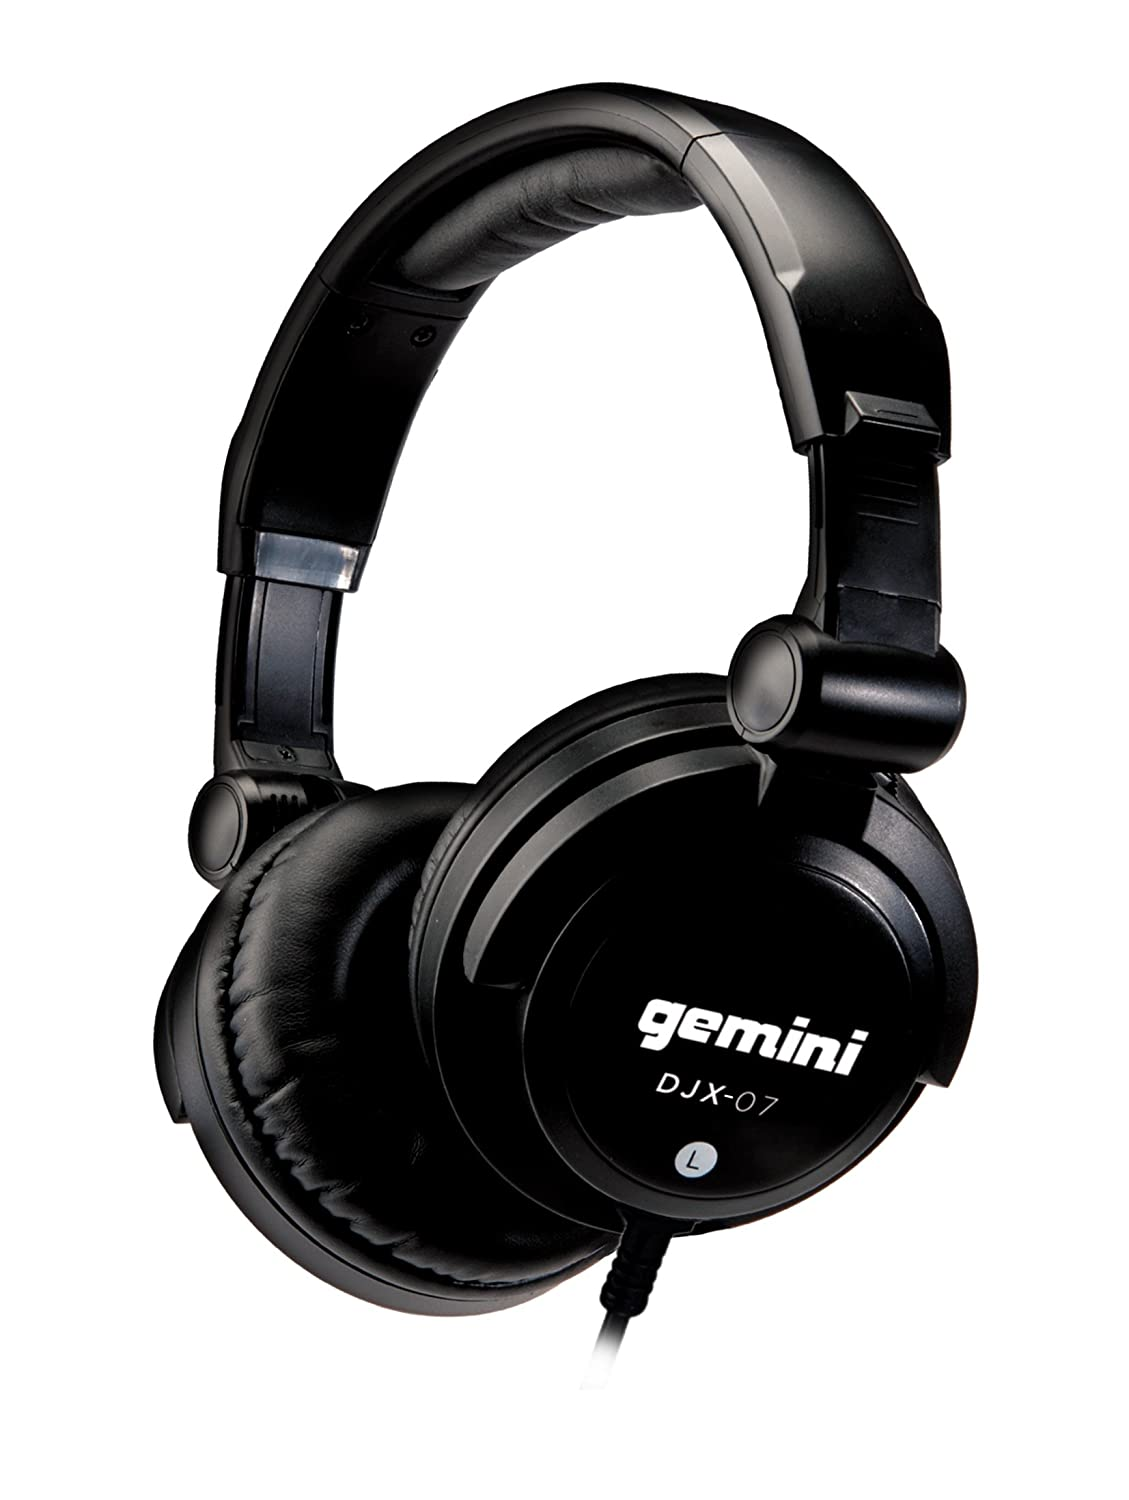 Gemini DJ DJX-7 Professional Dynamic Monitoring Headphones DJX07 Accessory Electronics Home Audio & Theater